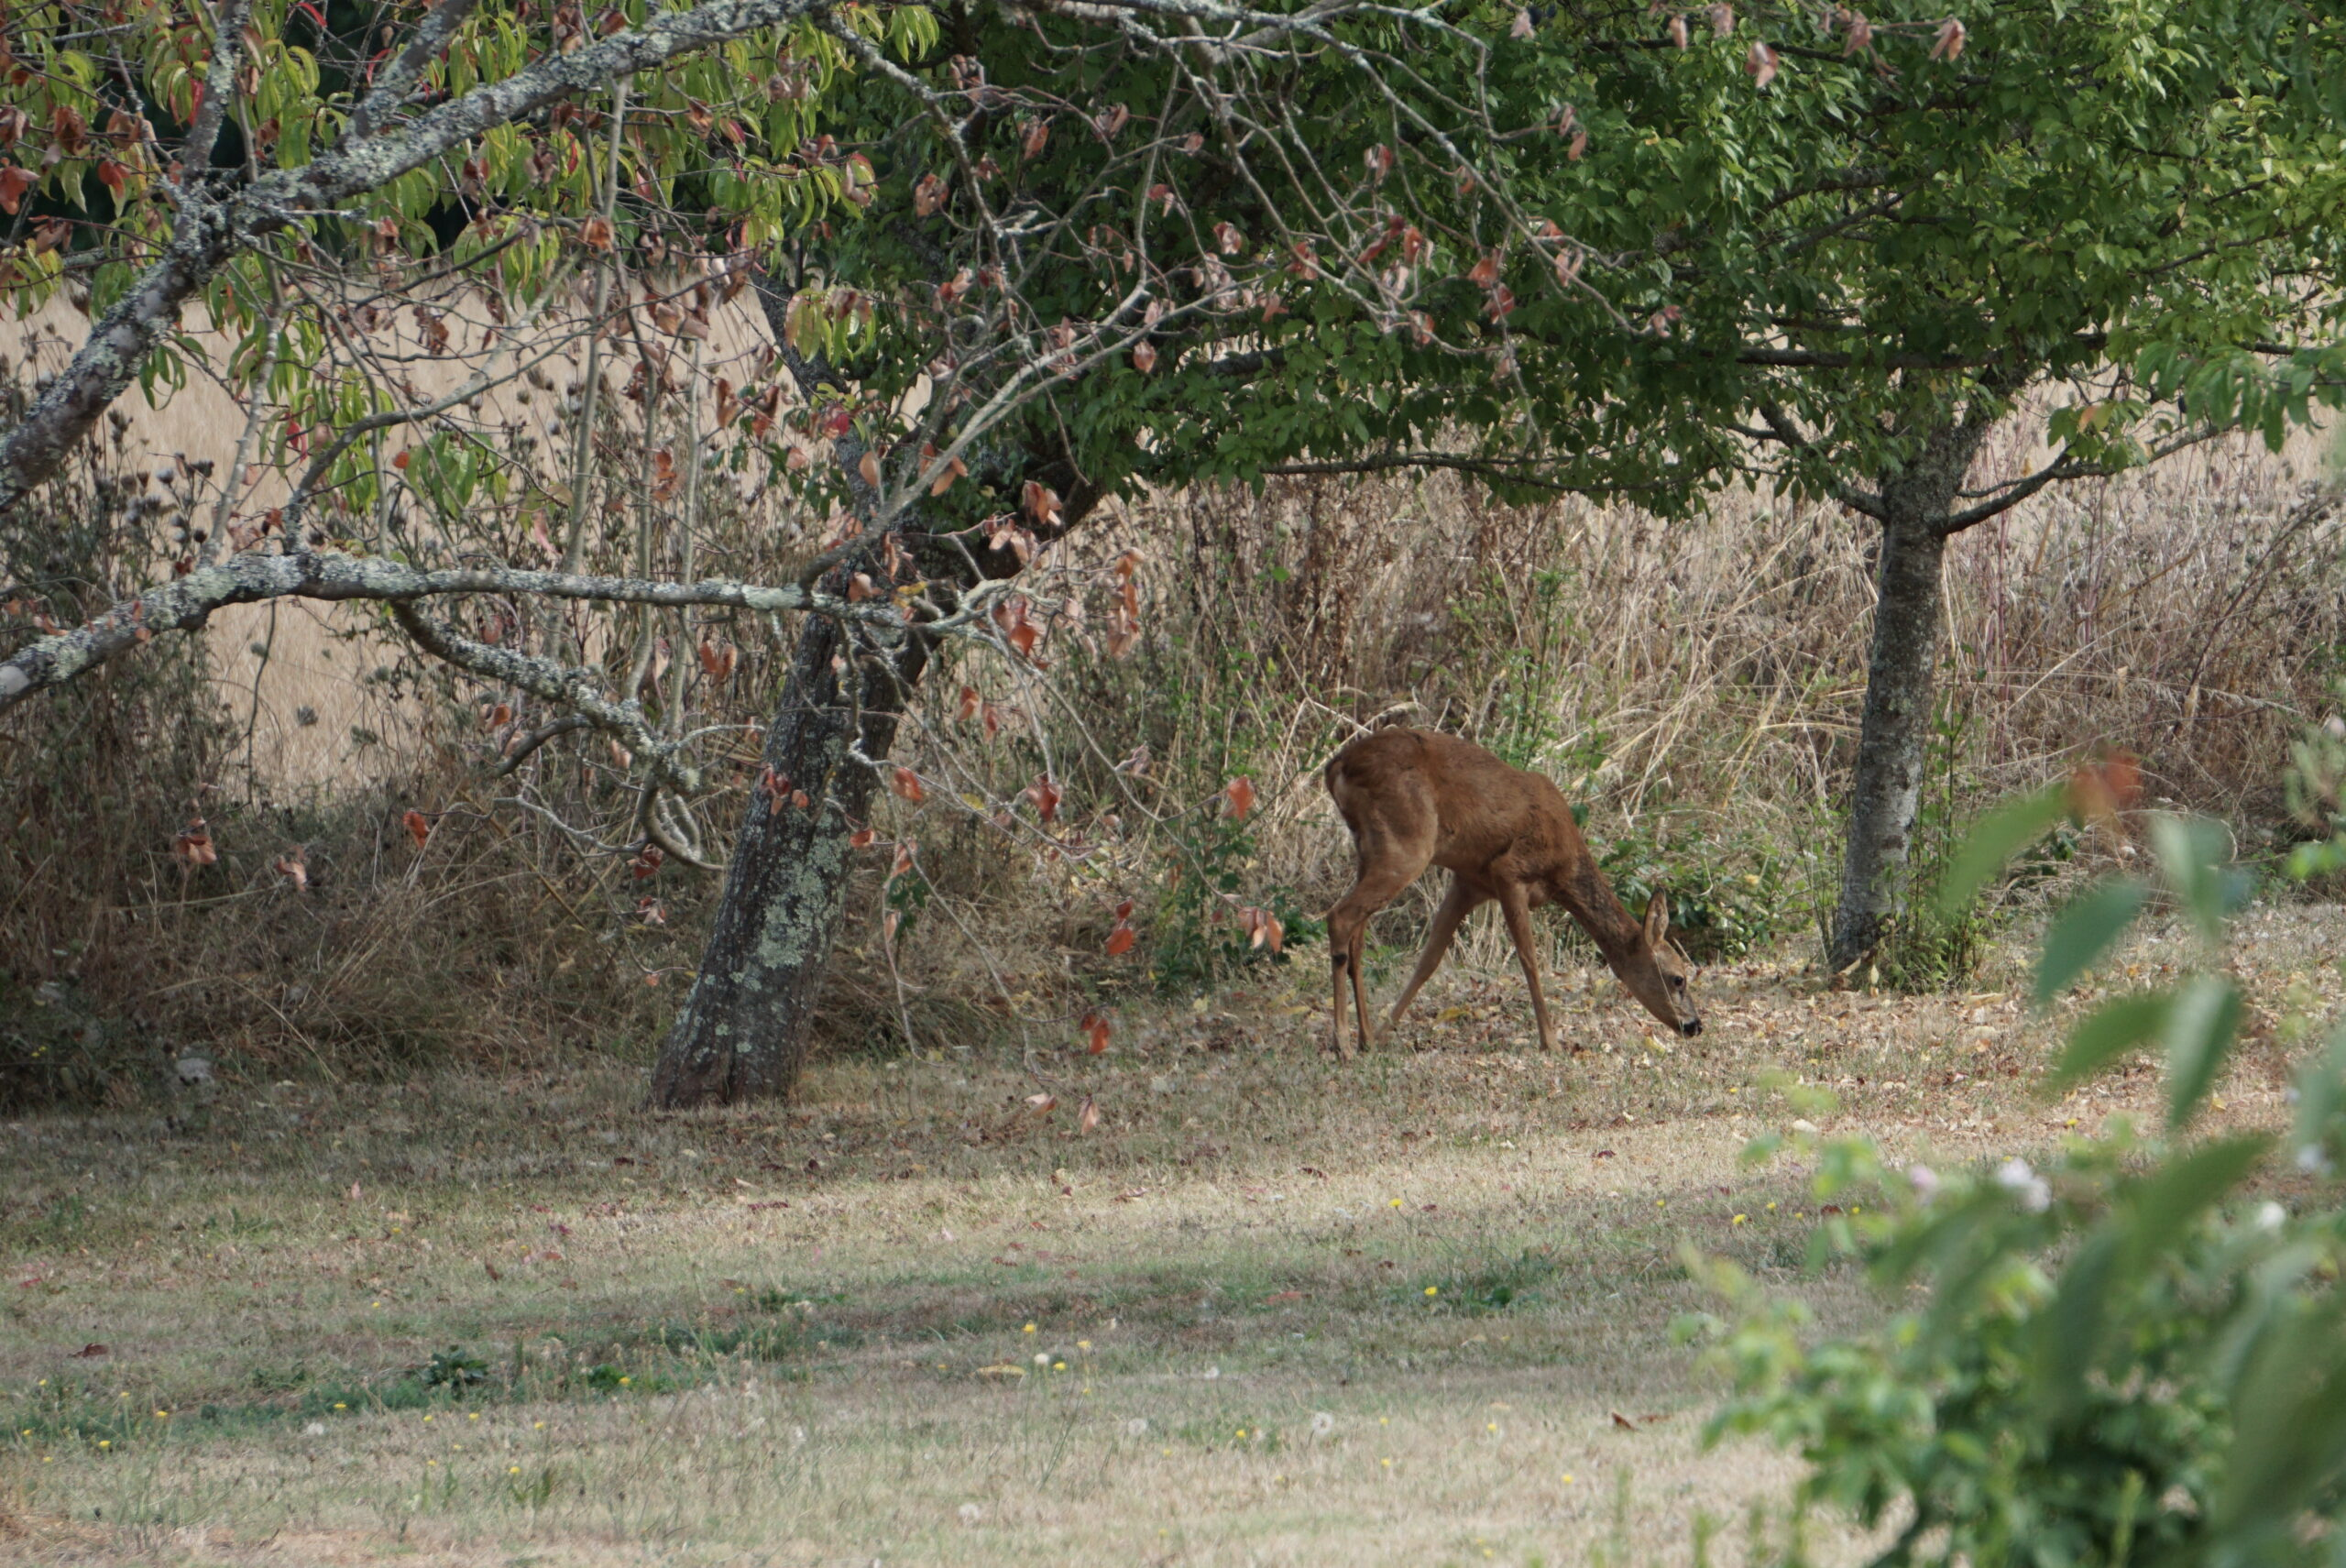 A deer in the orchard of Le Mas, a holiday home in the Dordogne, France